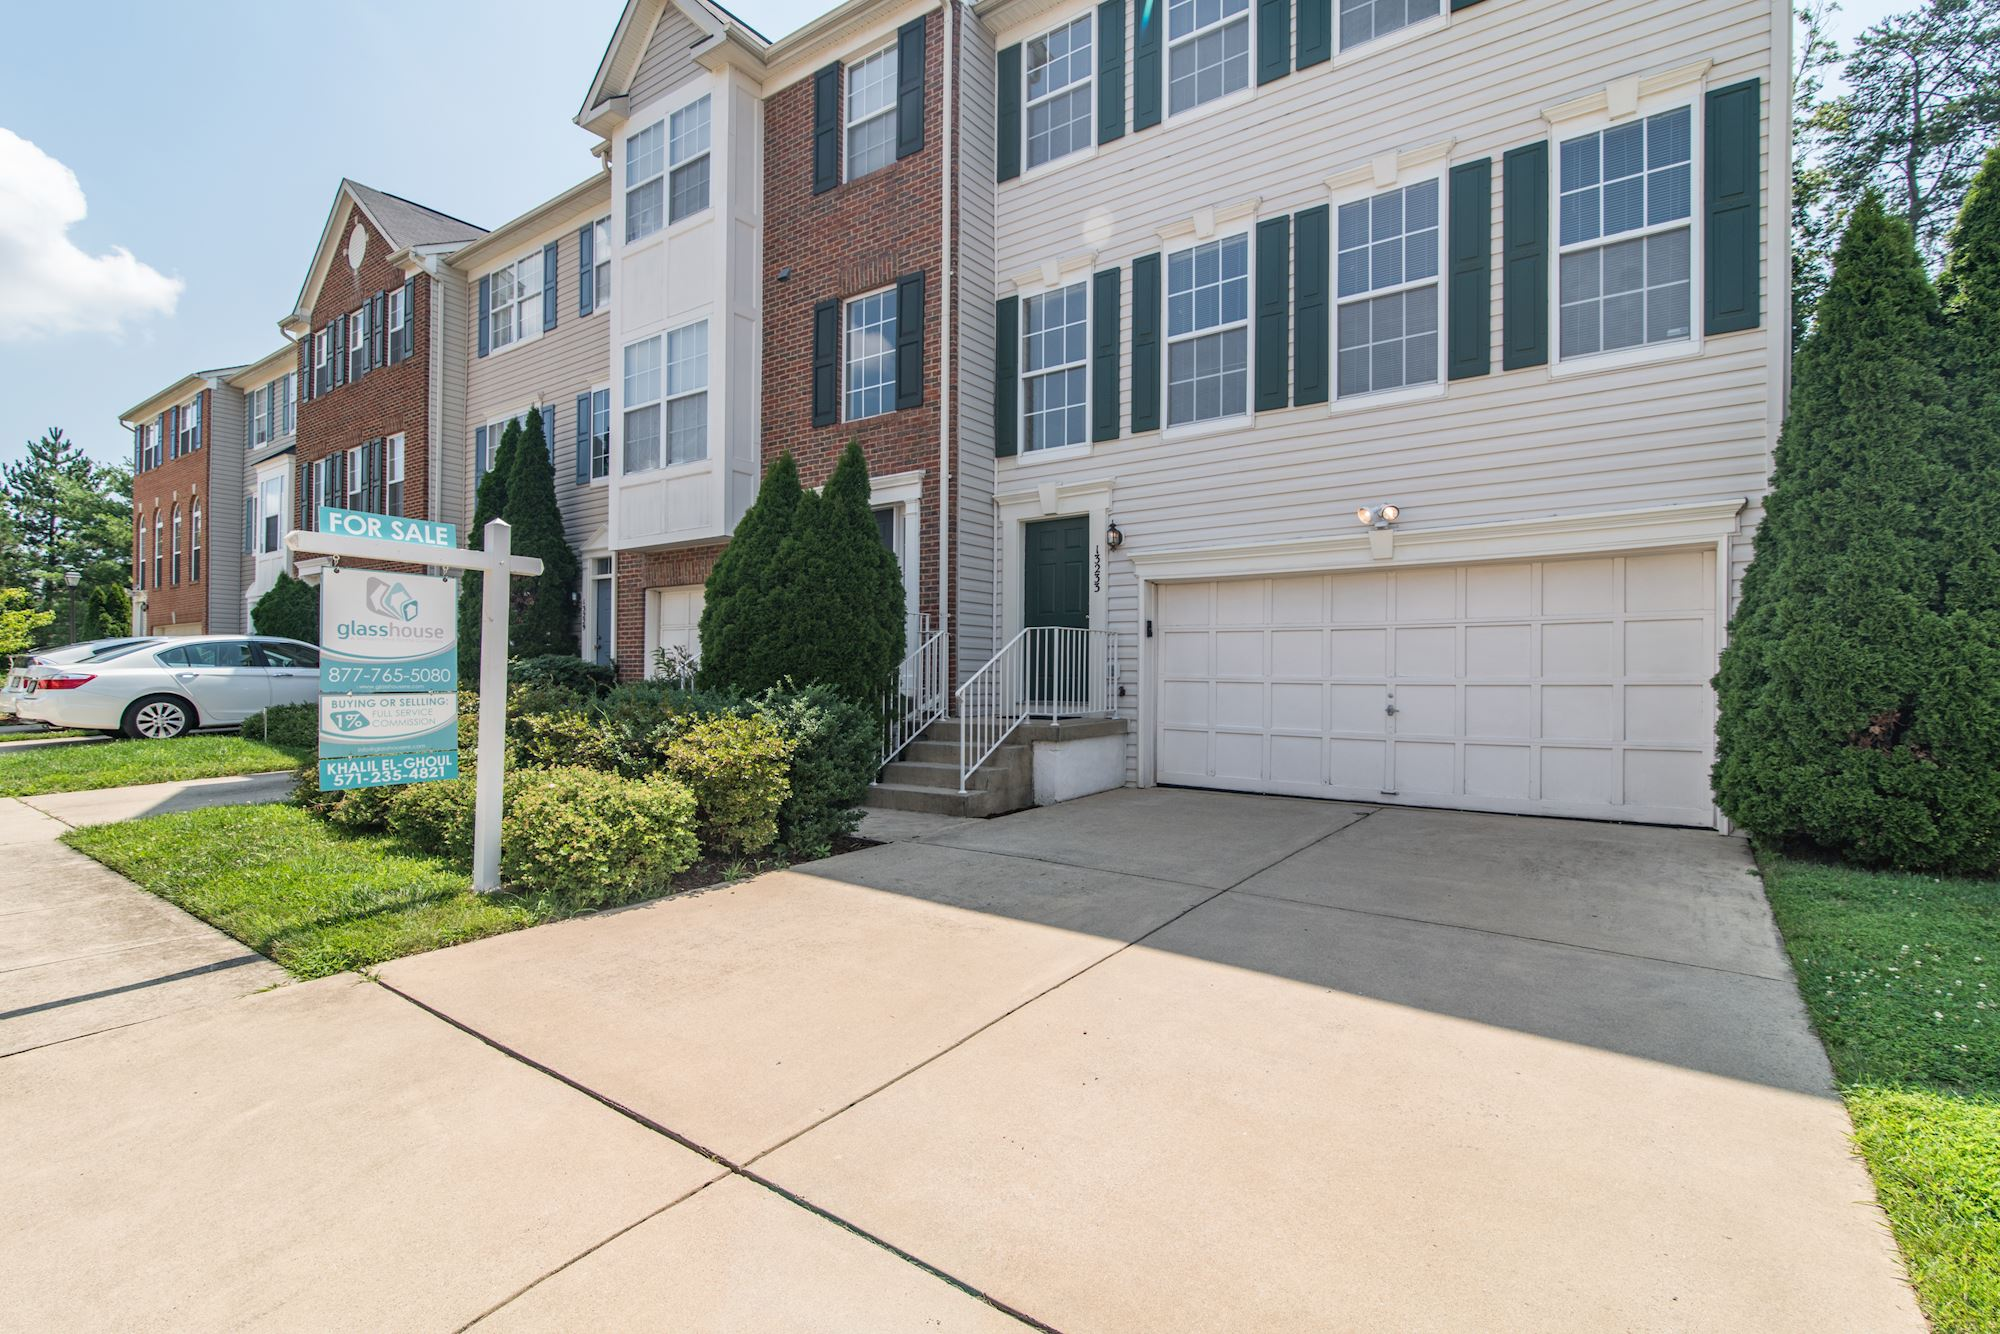 NEW LISTING: Lovely End Unit Townhouse in Herndon